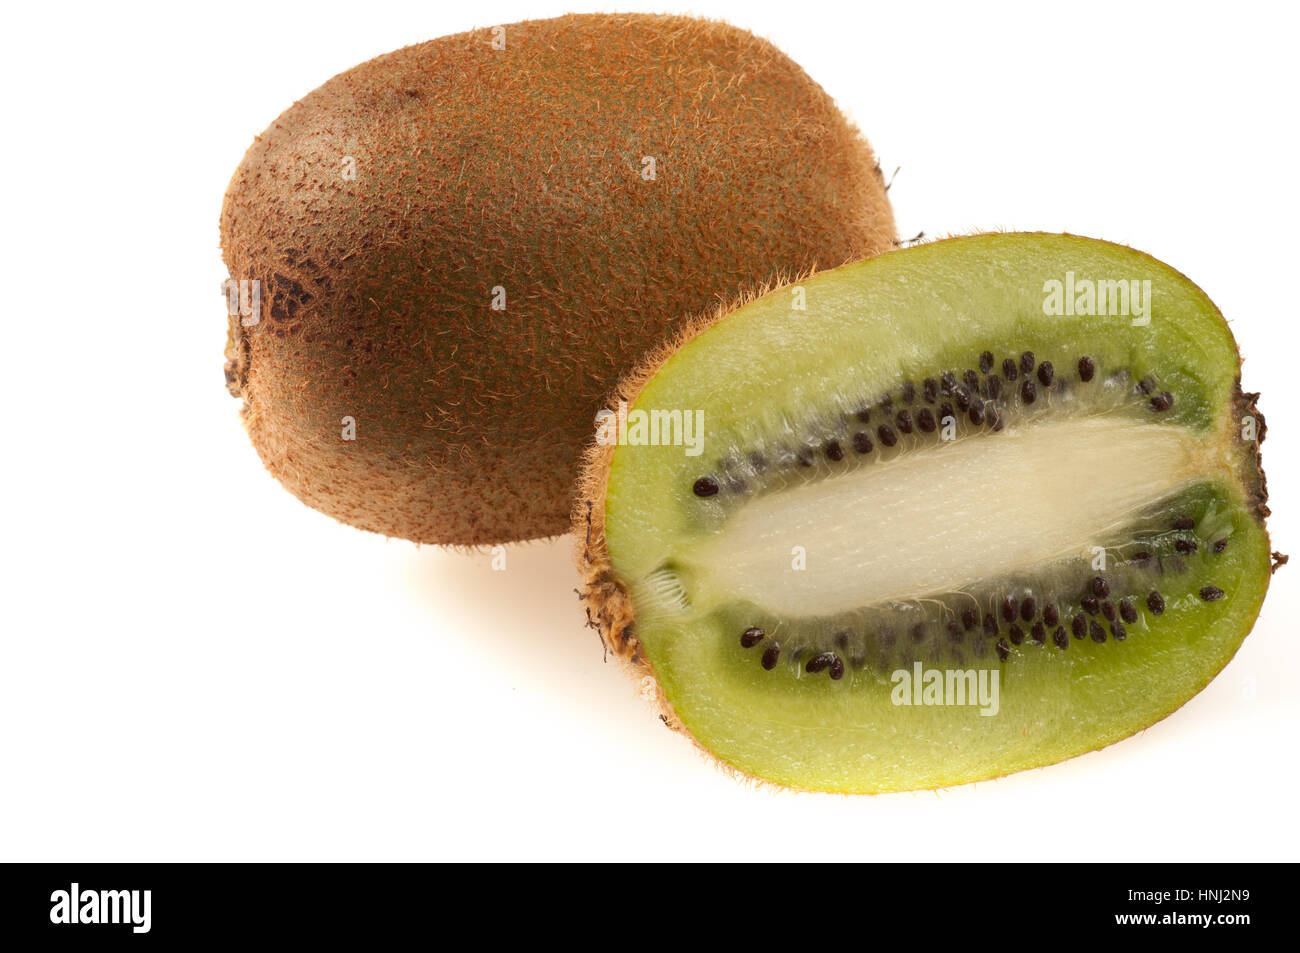 kiwi fruit is a consumer and has many beneficial properties - Stock Image